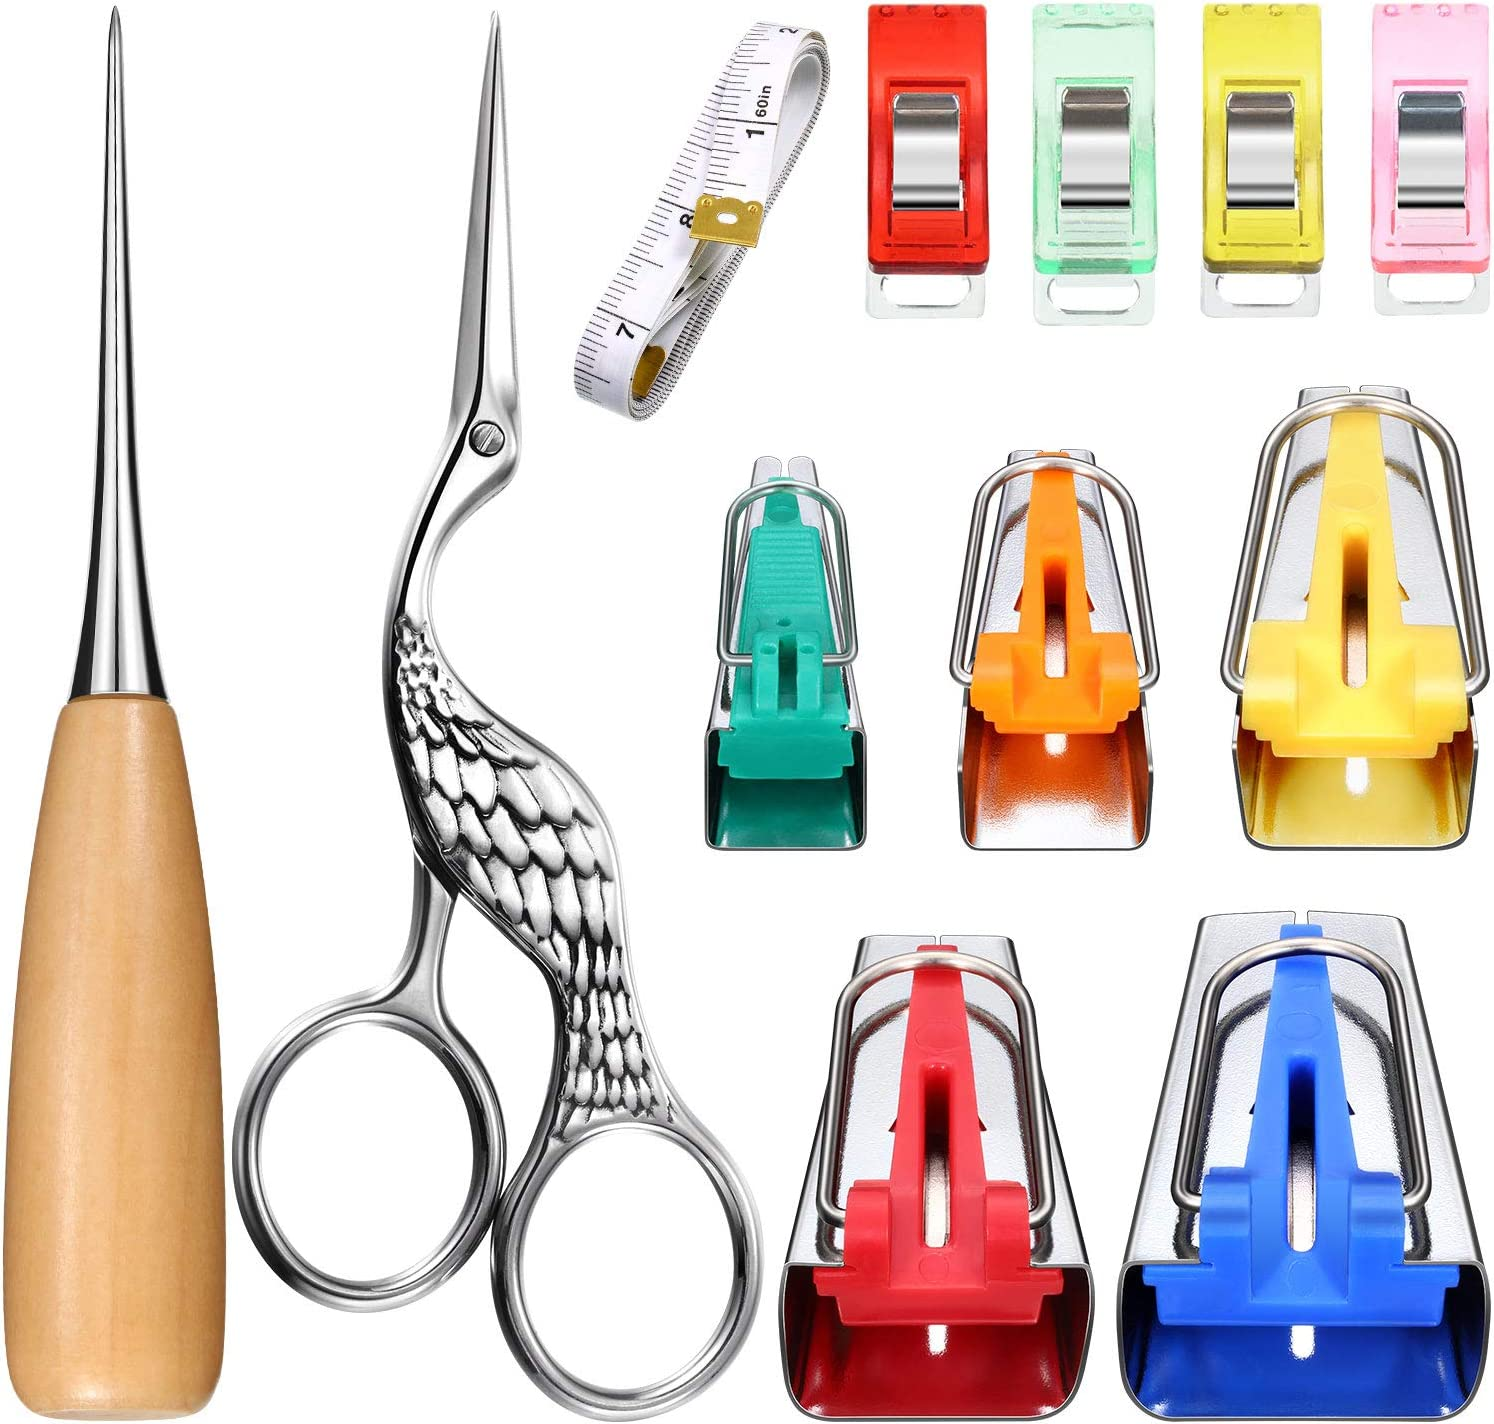 13 Pieces Bias Tape Maker Kit Set 5 Sizes 6mm 9mm 12mm 18mm 25mm Fabric Bias Tape Maker DIY Sewing Tools with 5 Pieces Cloth Clips Awl Sewing Craft Scissor and Double-Scale Soft Tape Measure